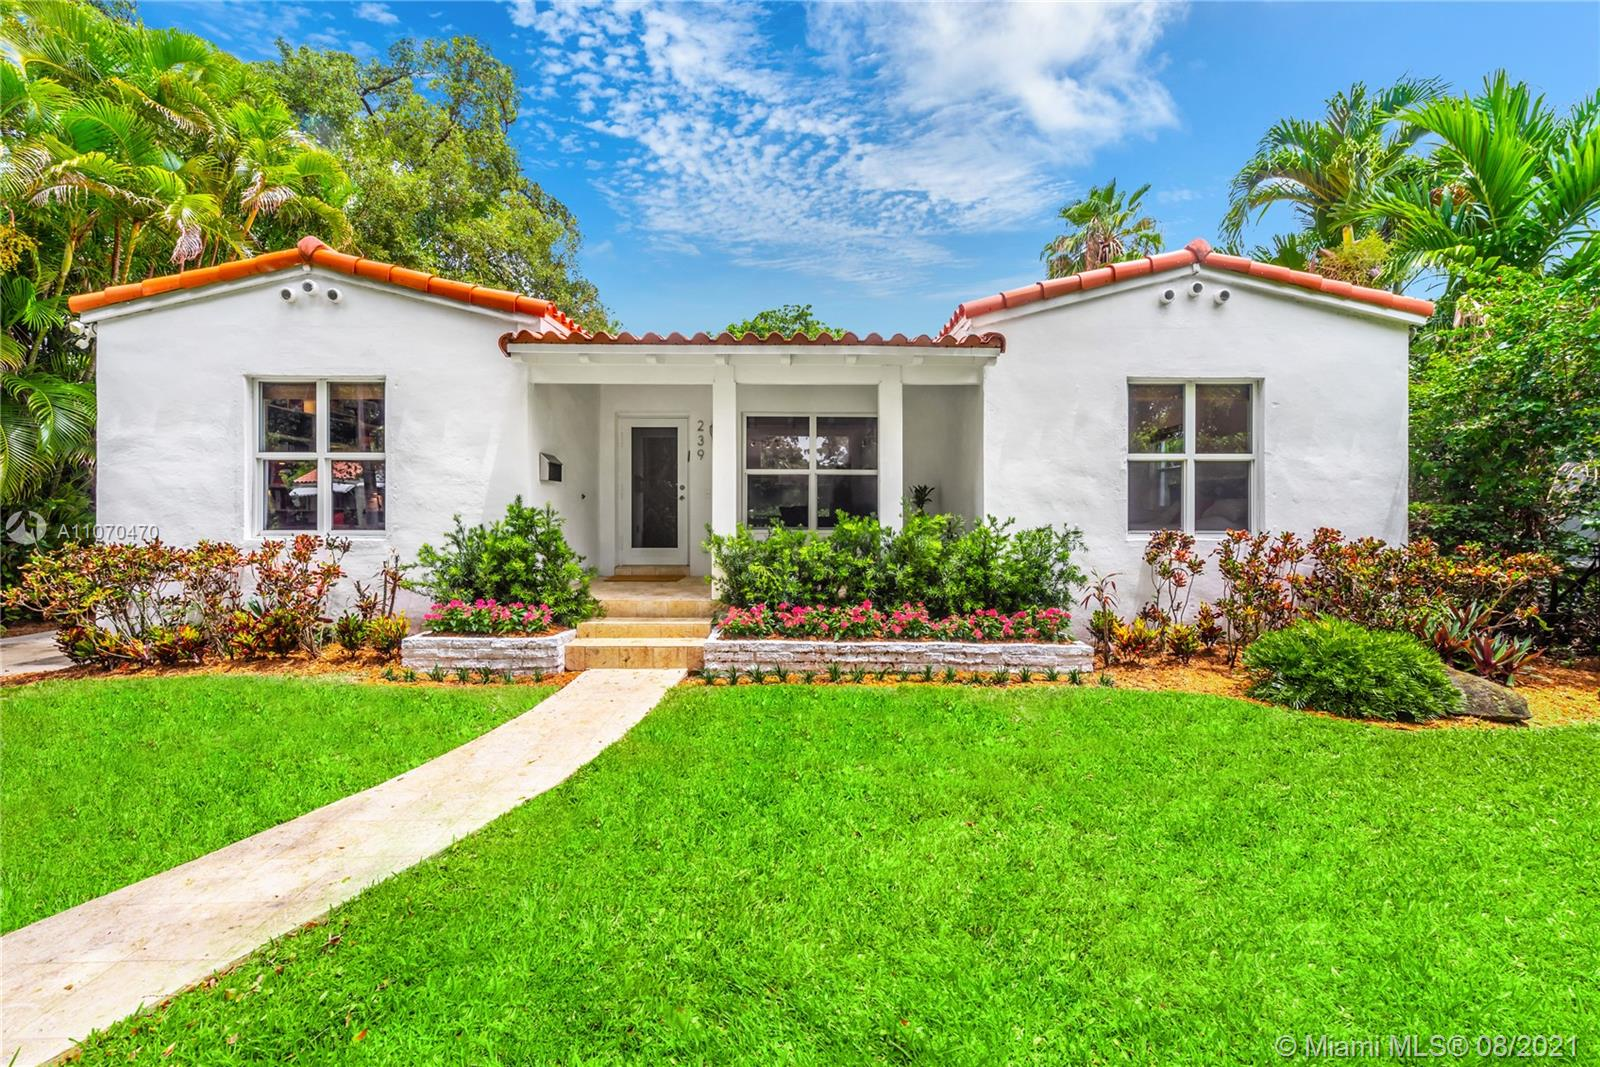 Charming Coral Gables ranch-style home! Walking distance to Merrick Park, Plaza Gables, or CG Youth Center. Welcome to your quiet urban oasis, wake up to birds singing. The lush backyard and picturesque front entry allow for gorgeous garden views from every room. Inside, you will find fully updated features including a modern kitchen, 3 bedrooms with en-suite bathrooms, & recessed lighting. The welcoming front porch leads to an open layout with restored original wood floors bringing warmth into the home, while terra cotta tiles seamlessly connect indoor & outdoor spaces. Extra features include large laundry room, full impact windows/doors & attached storage area. Ideal location blocks from Miracle Mile & Metrorail; a short 15 minutes to Miami International Airport and Brickell.